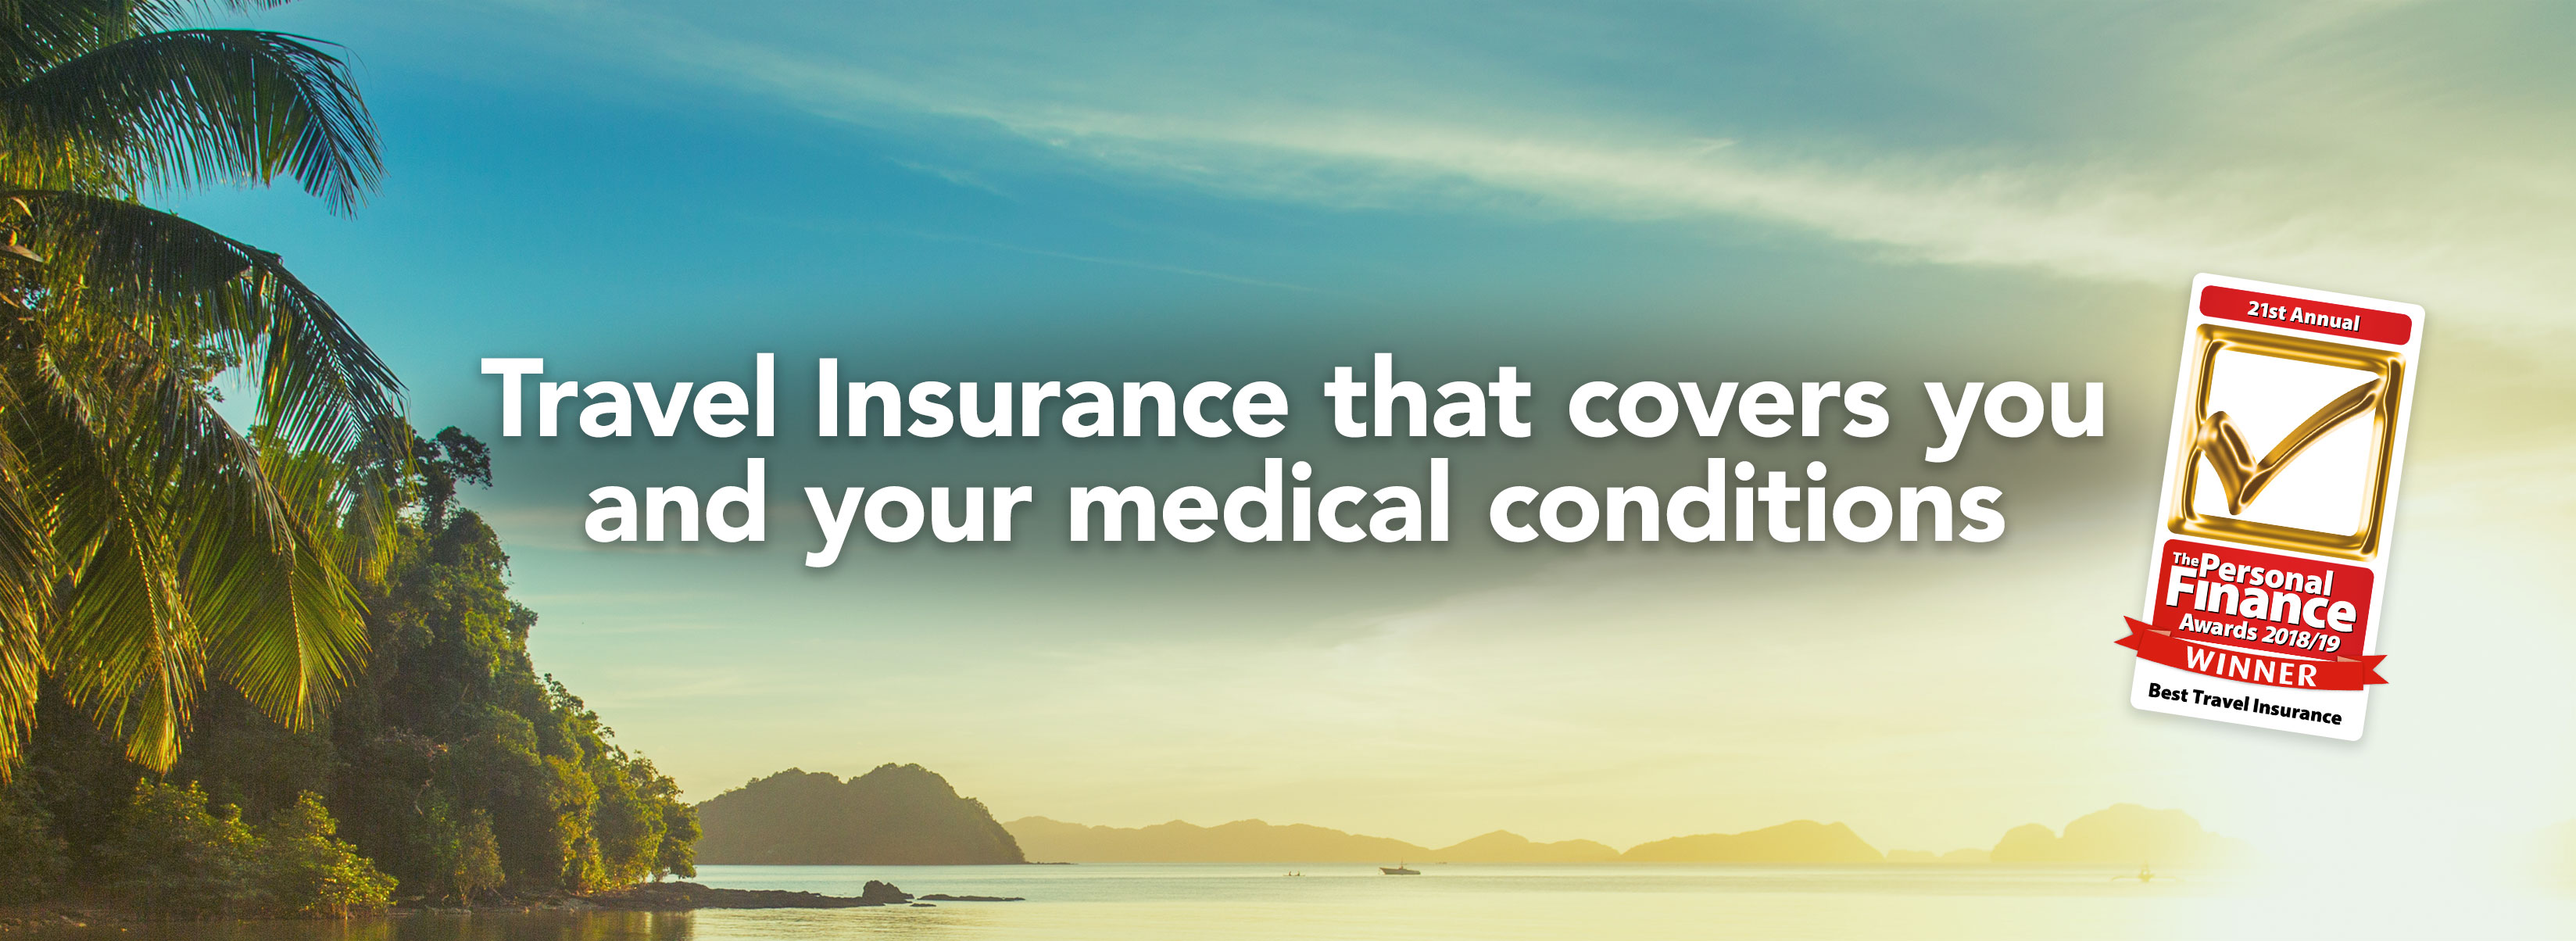 Avanti Travel Insurance™ - Get the Best Cover For Your Holiday